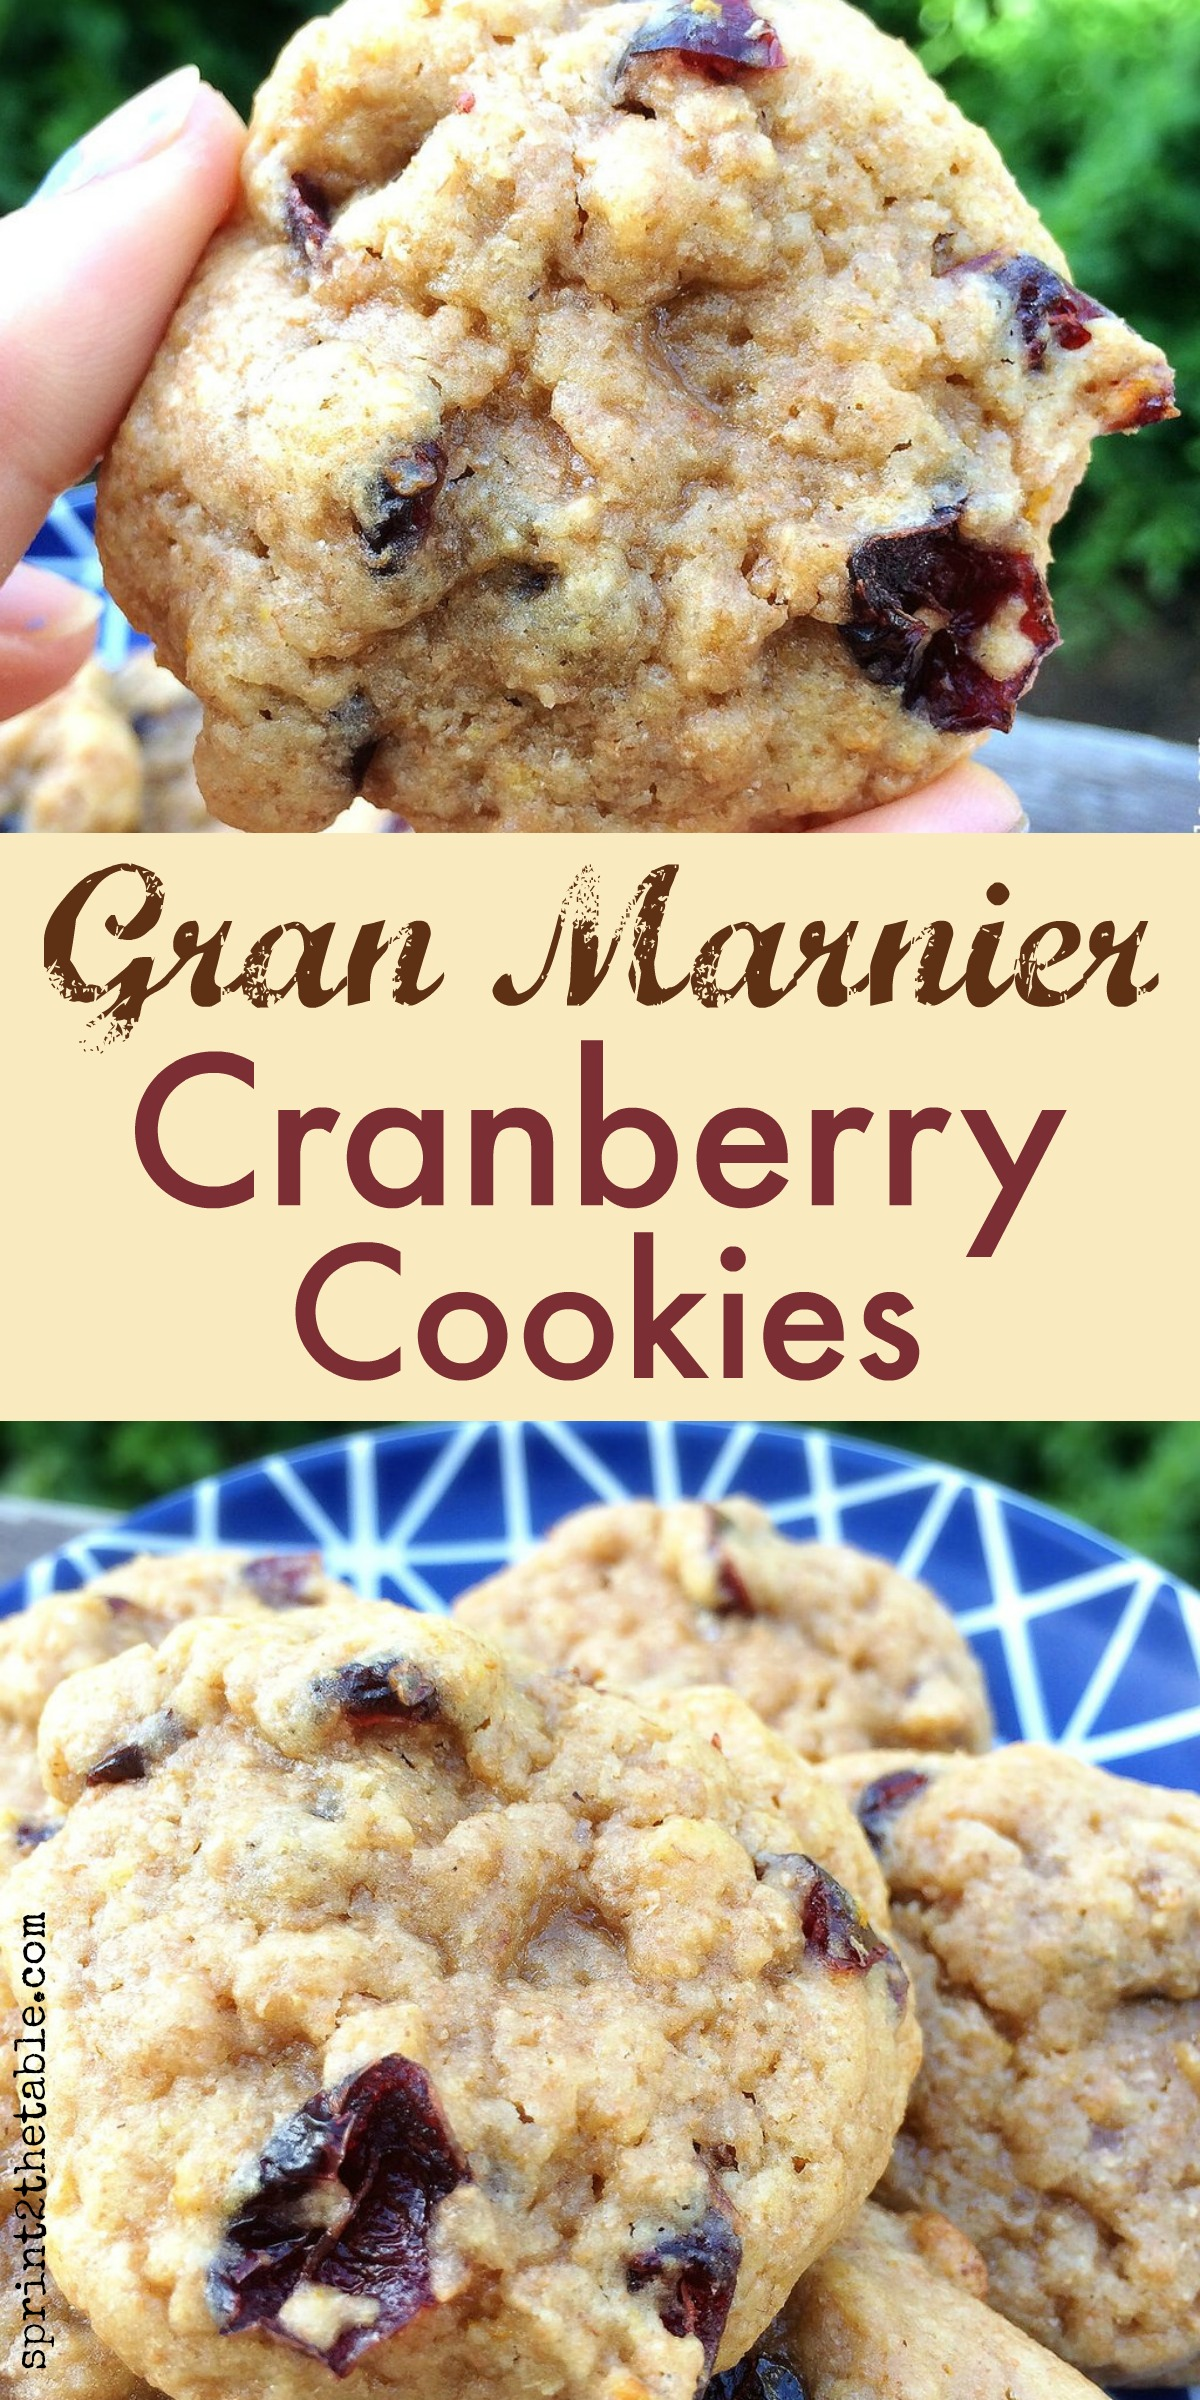 If you like a soft, doughy cookie, these Gran Marnier Cranberry Cookies will be your favorite too!